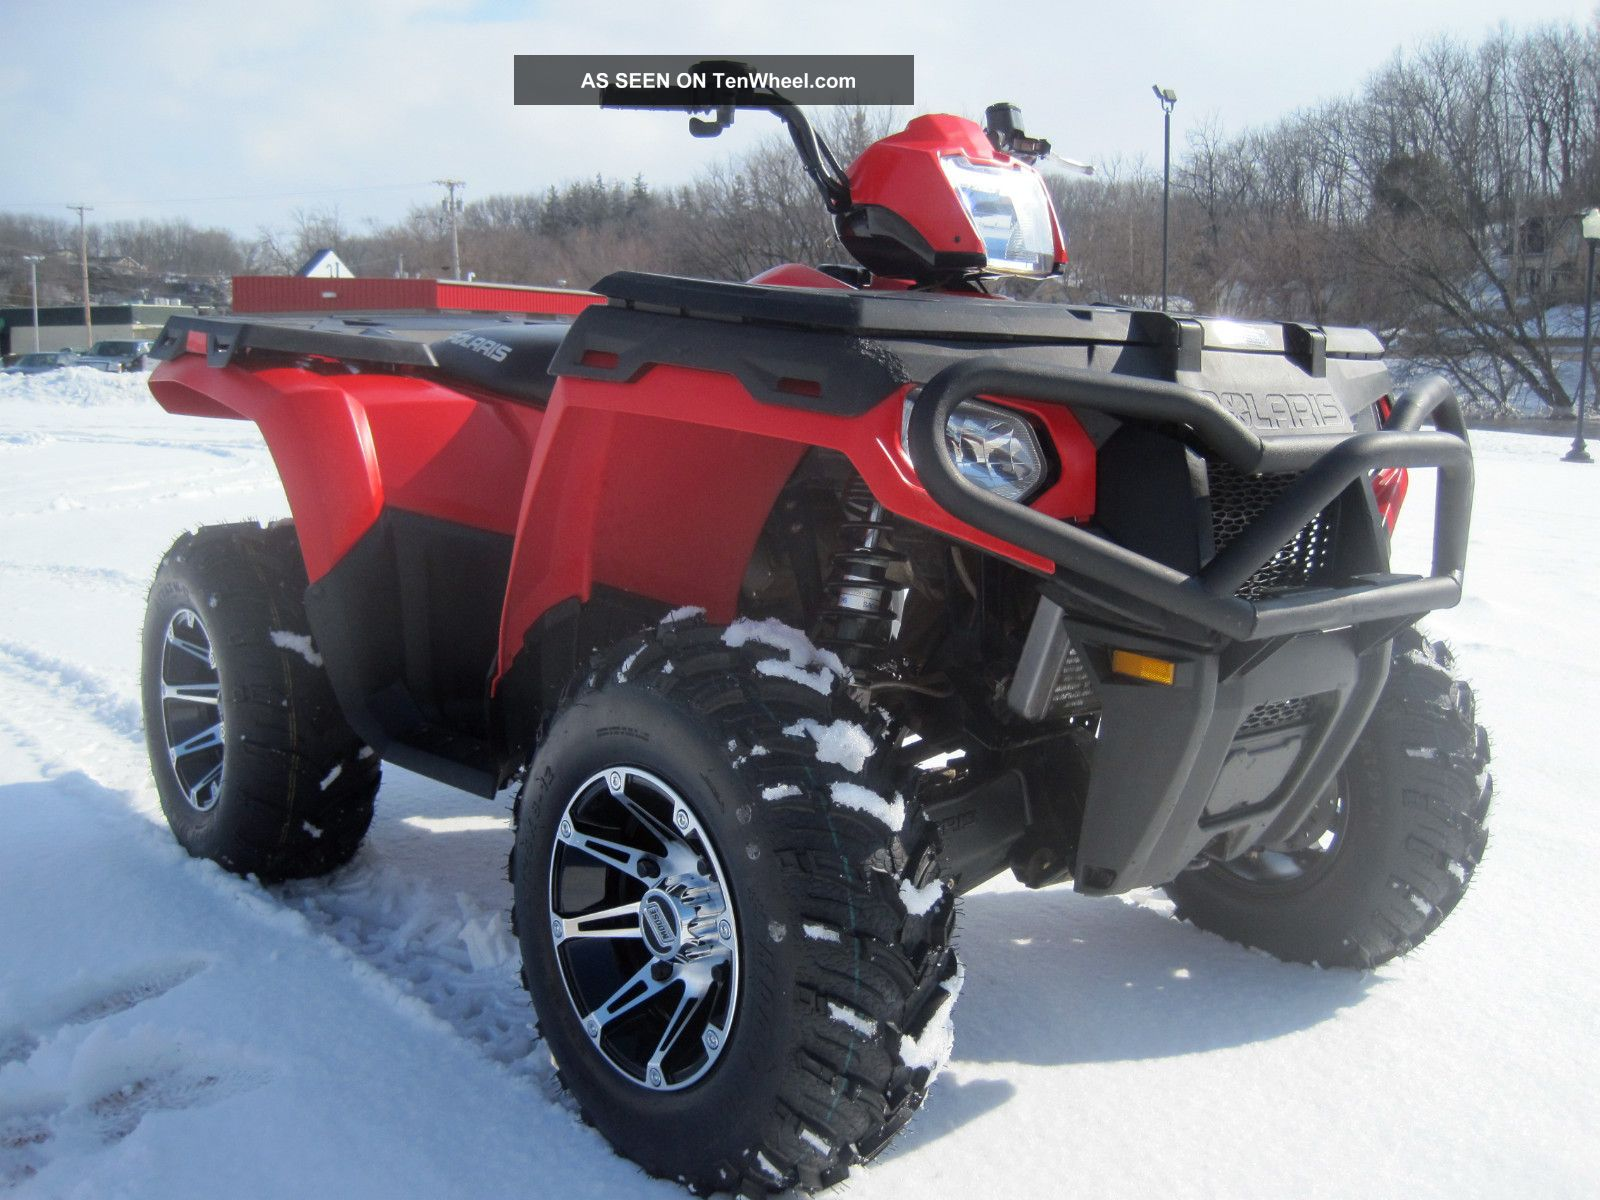 troubleshooting tips for the polaris sportsman 500 ehow. Black Bedroom Furniture Sets. Home Design Ideas